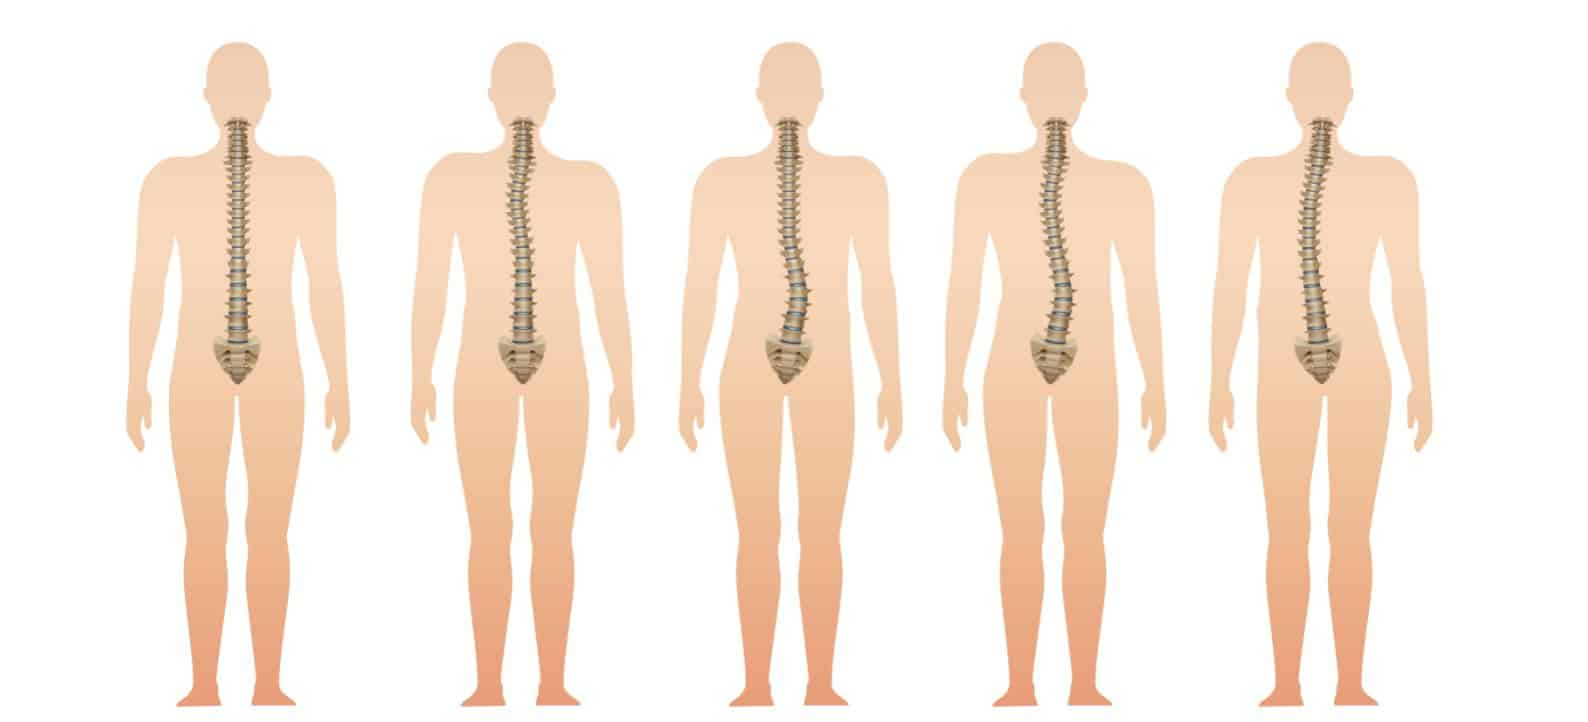 Scoliosis of spine can be helped by Pilates